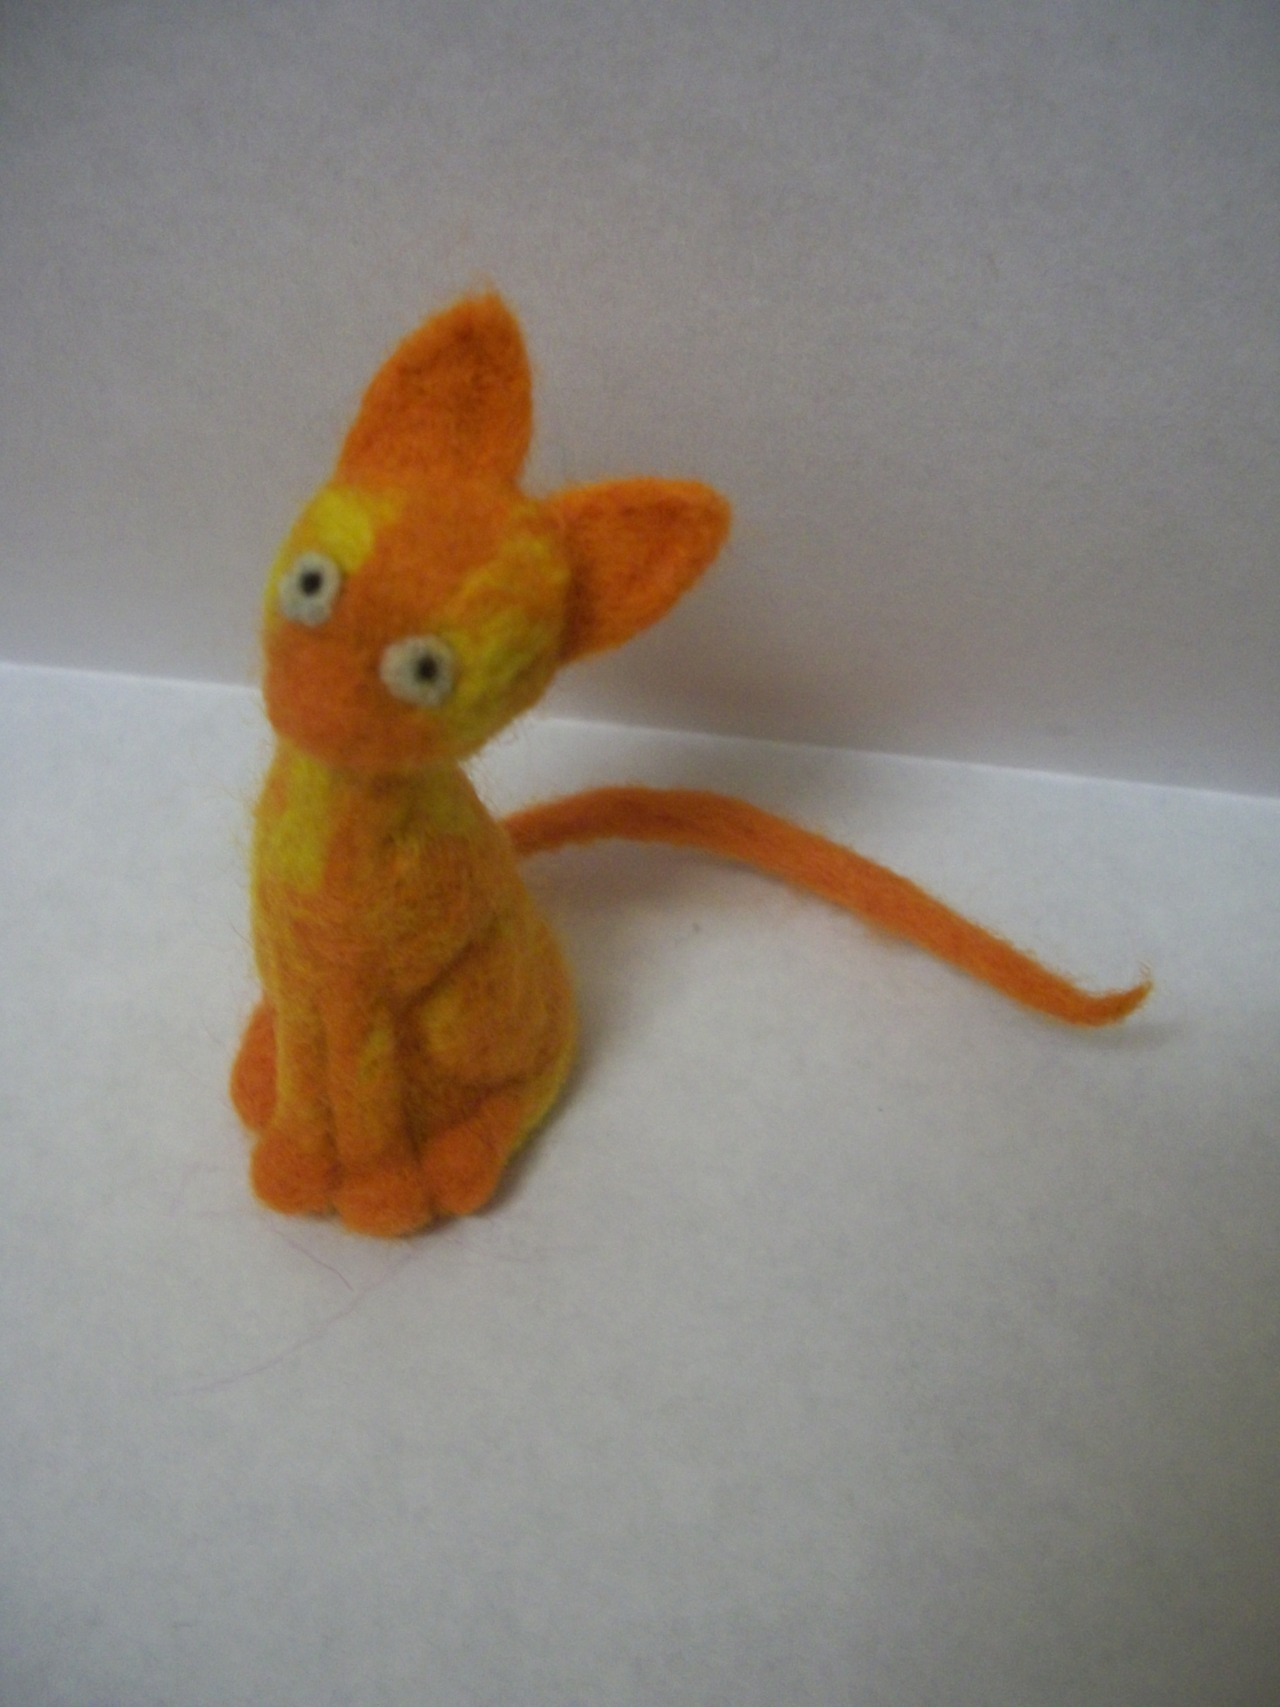 So this is my first foray into the world of needle felting and my god! Is it hard! It looks relatively simple but it is insanely labour intensive and I'm pretty certain I'm getting rsi already. Even so I am mega proud of my little cat heh.